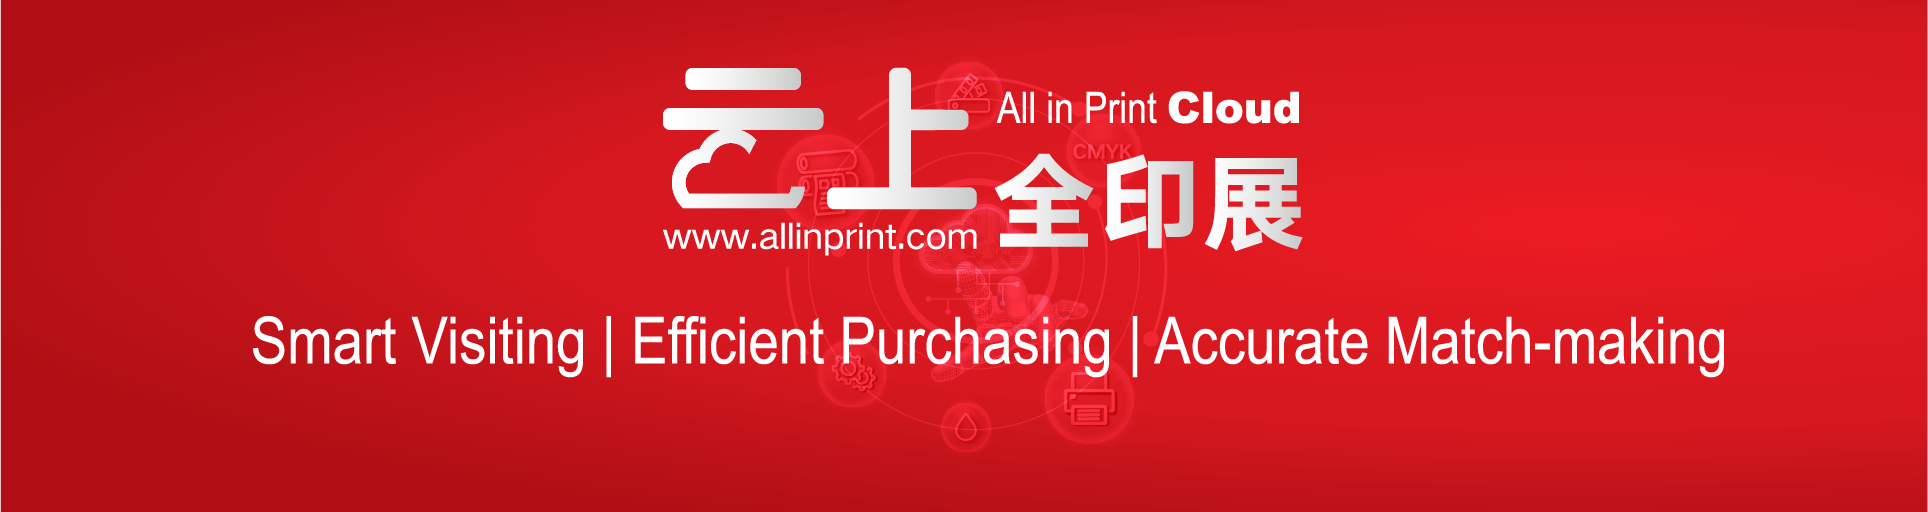 E-visit All in Print from now on